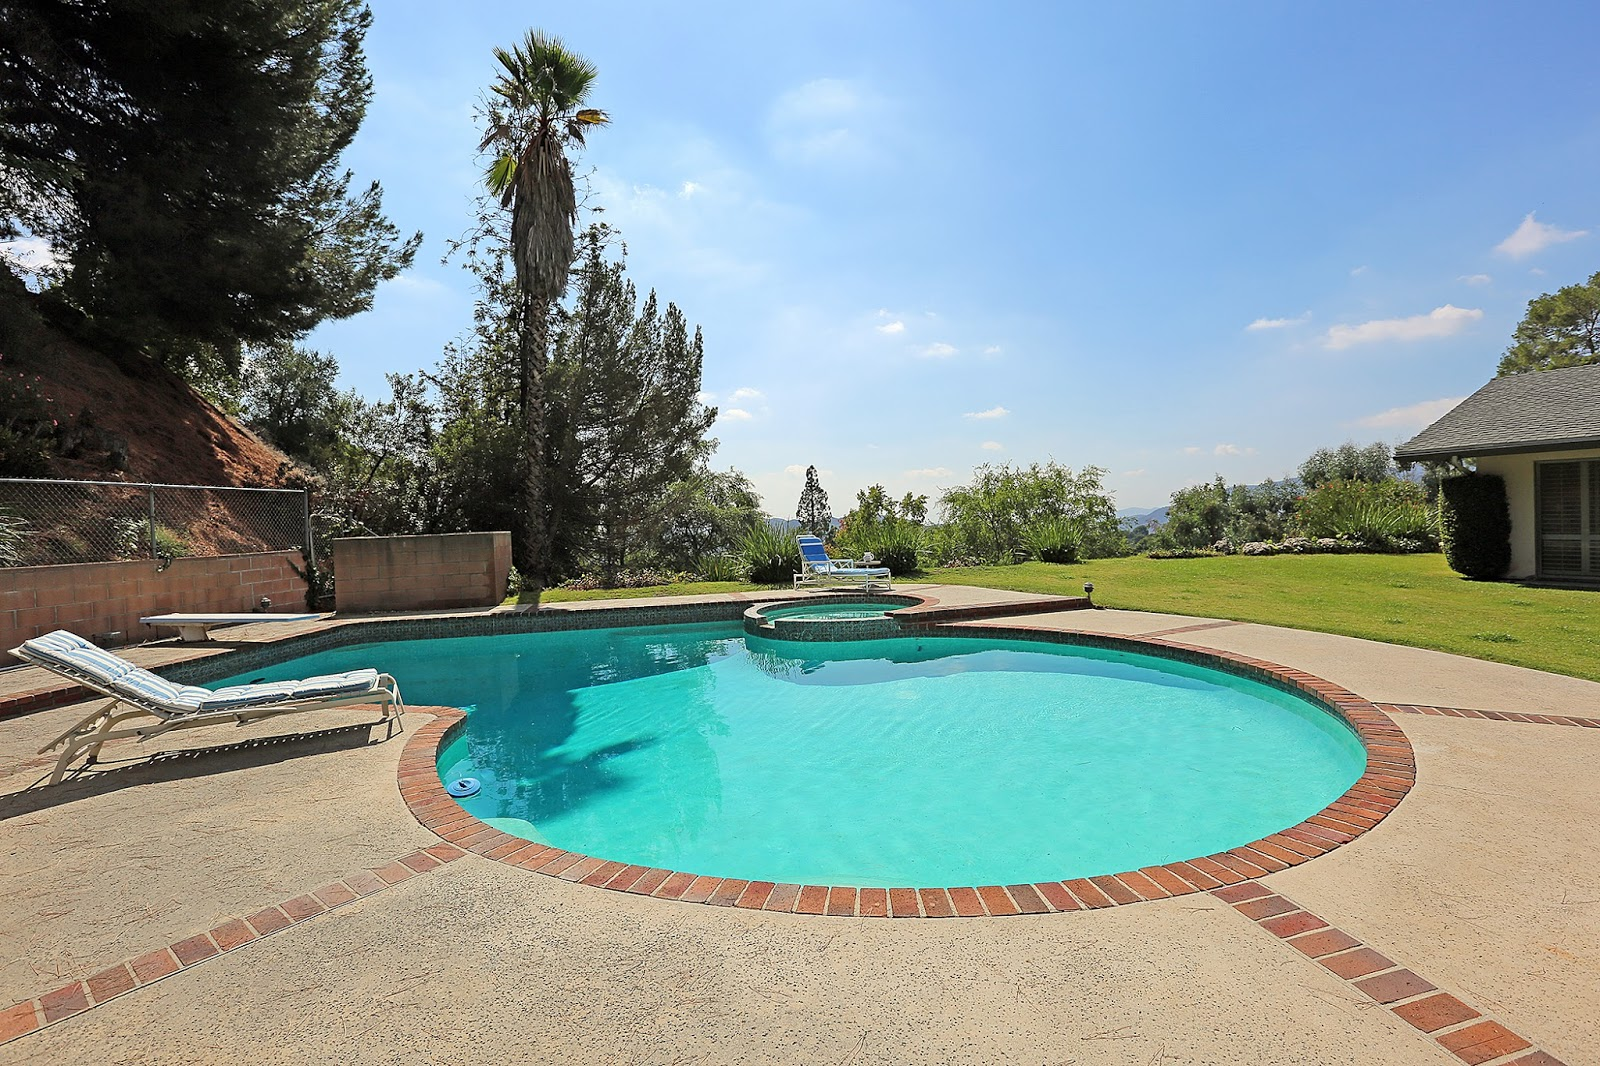 ... Pool/spa, Covered Patio, And Large Flat Grassy Area With Gorgeous  Mountain And City Views. Connected To Sewers On Bond. Award Winning La  Cañada Schools.